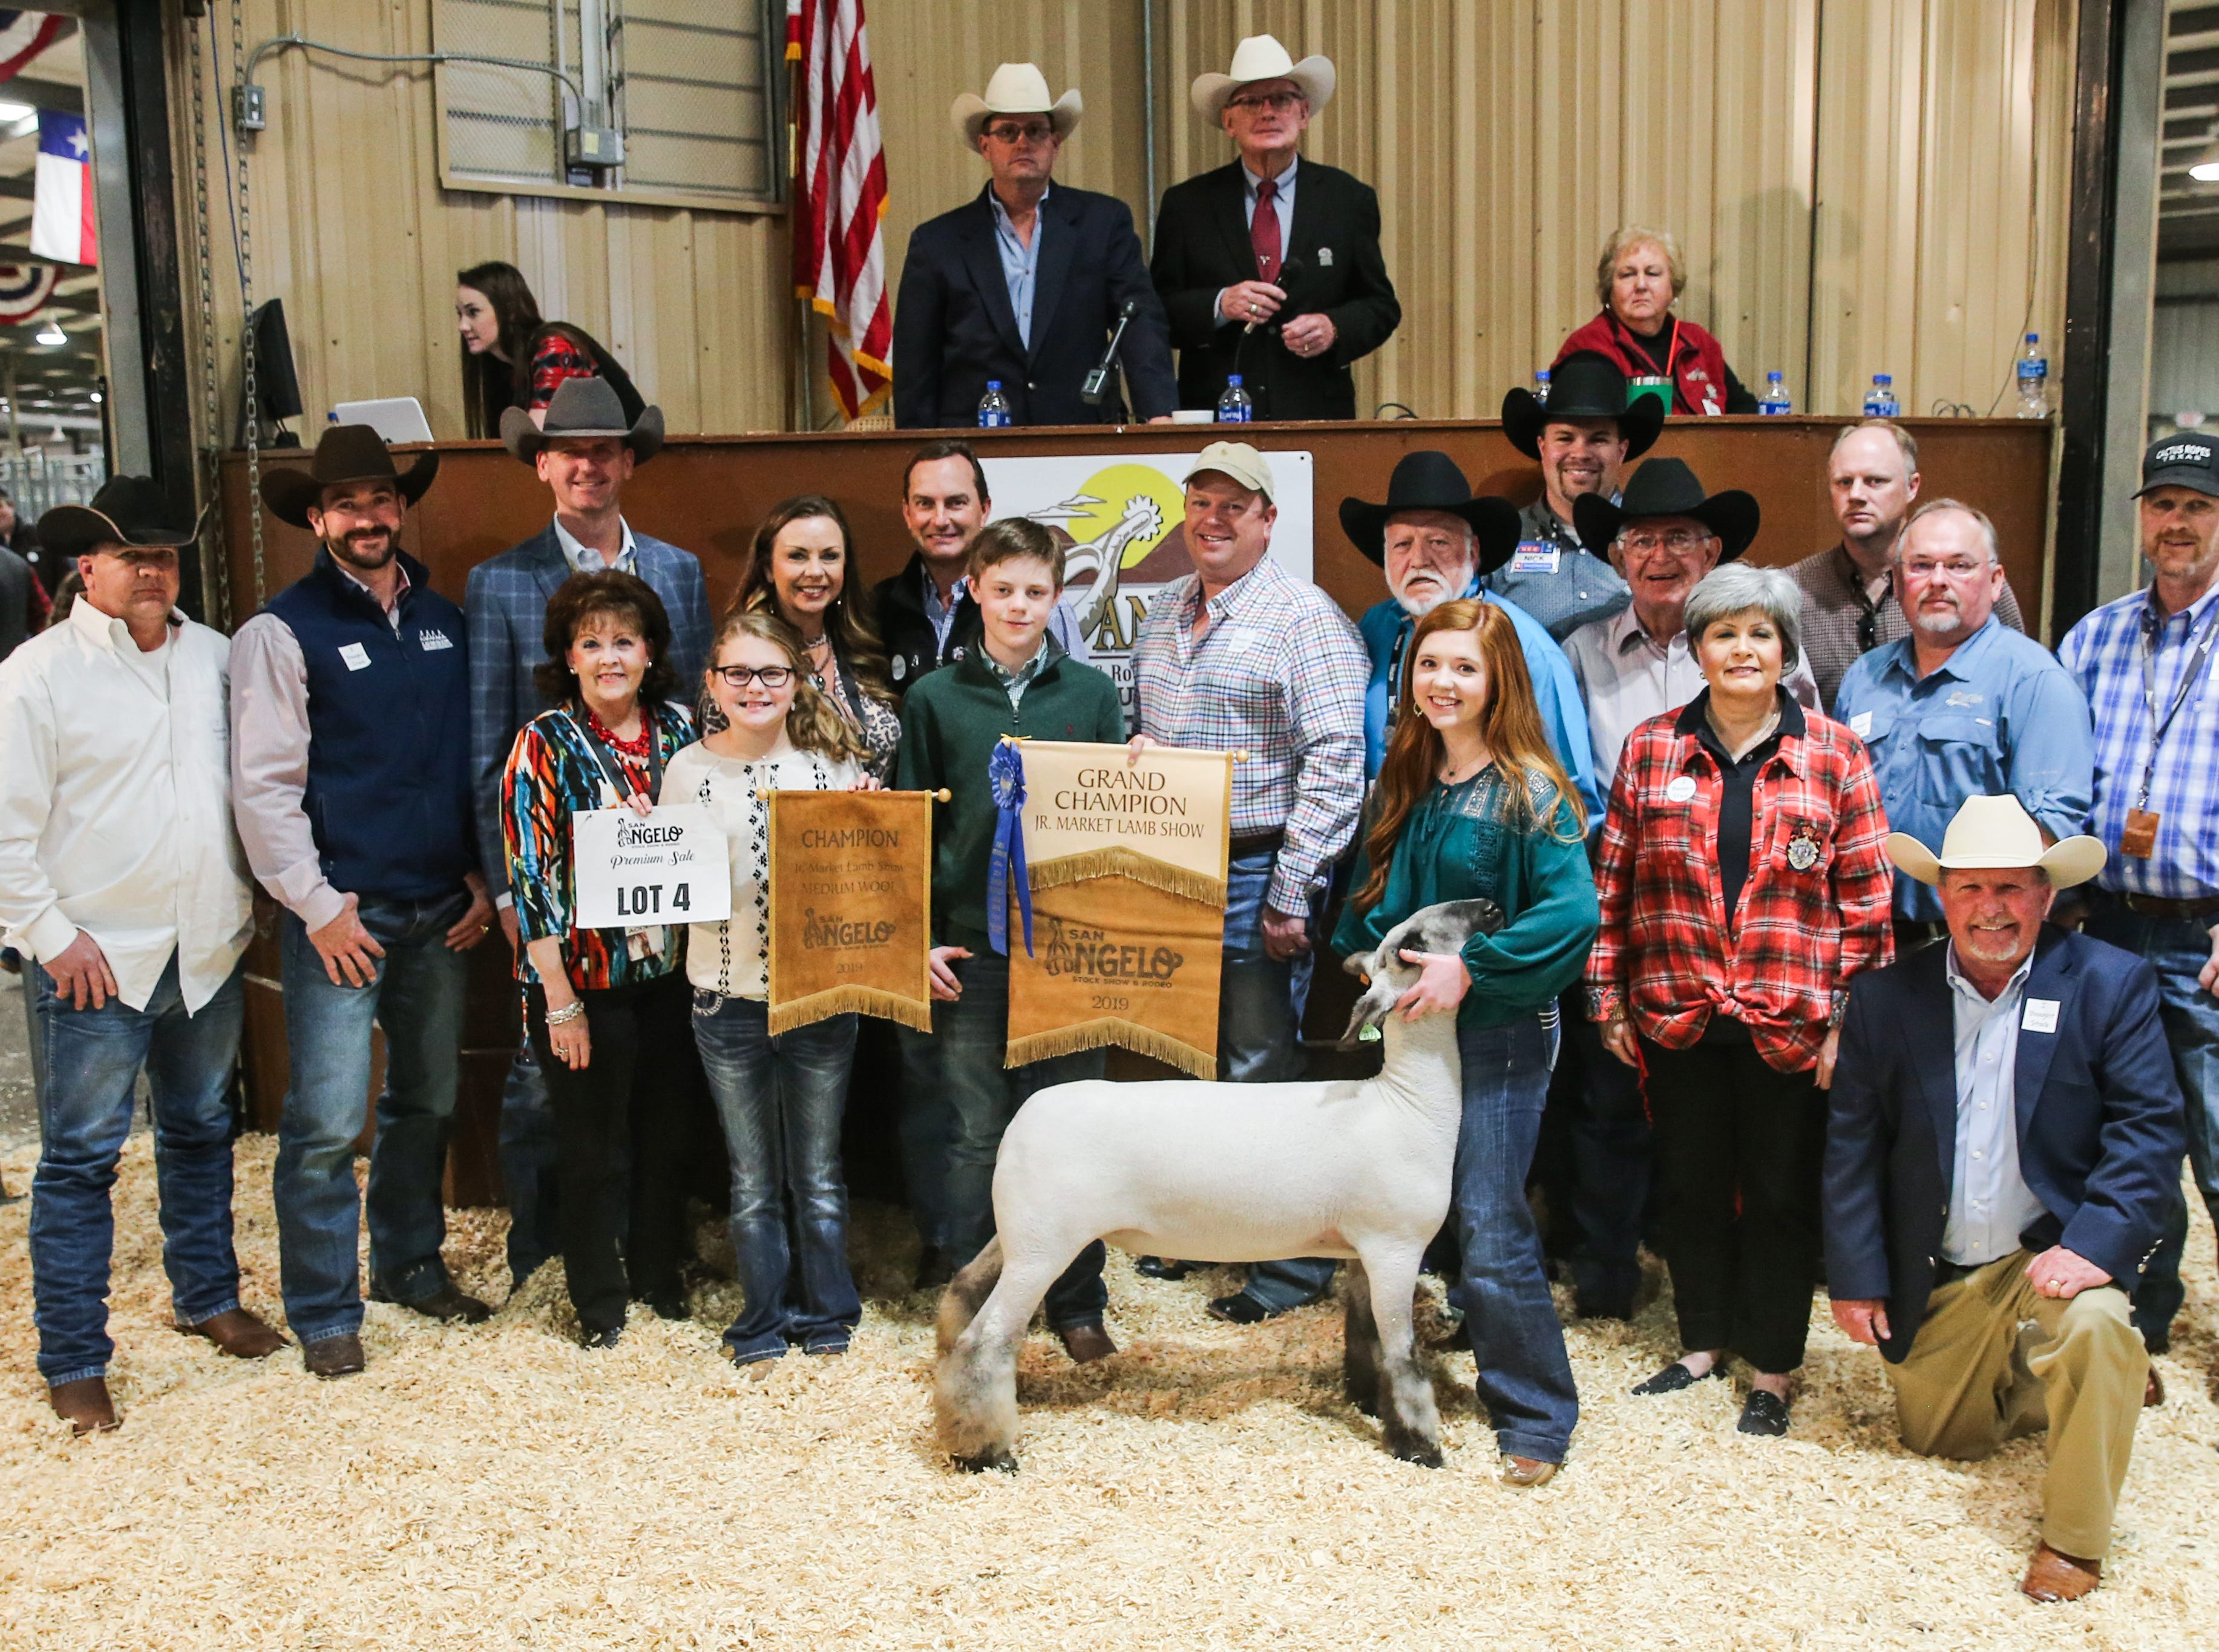 Grand Champion Market Lamb exhibited by Carlye Winfrey of Seminole FFA, sold for $23,000.From left to right: Britt Wilhem, Auto Wrangler; Cooper Hogg, City Lumber; Sean Carter, Gandy Ink; Vicki Loso, 1st Community Federal Credit Union; McKinley Clem (holding banner); Bridget Carr, Bug Express; John Mayer, Mayer Ranch; Hudson Franklin (holding banner); James Sanderson, Armstrong, Backus & Company; Clay Cross, Cross County Construction; Carlye Winfrey (exhibitor); Nick George, H-E-B; Joe Wagley, Jody's Roofing; Toni Sudduth, Trans Texas Southwest Credit Union; Wade Franklin, Franklin Show Lambs; Randy Dupree, Capital Farm Credit; Todd Price, Jim Bass Ford; Guy Abbott, Glazer's Beer and Beverage.Not pictured: Weatherby Ranch, Drew Darby, WildLife Partners, LLC, Todd Donowho.